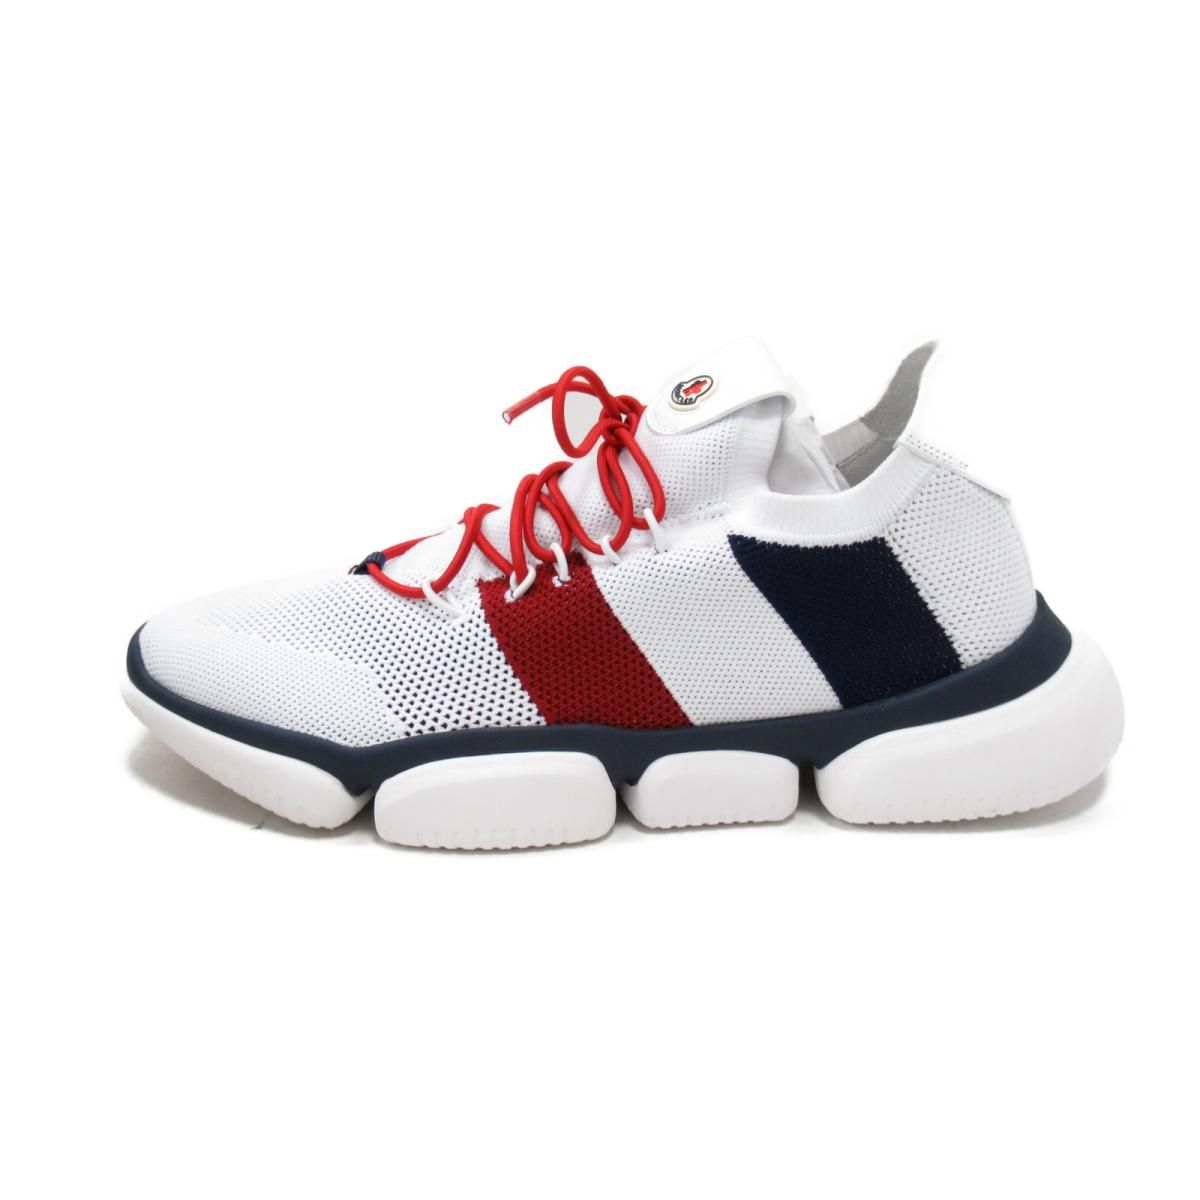 5c75ac77fad ... Monk rail sneakers or other men's fabric men white x navy x red  (1036200) ...